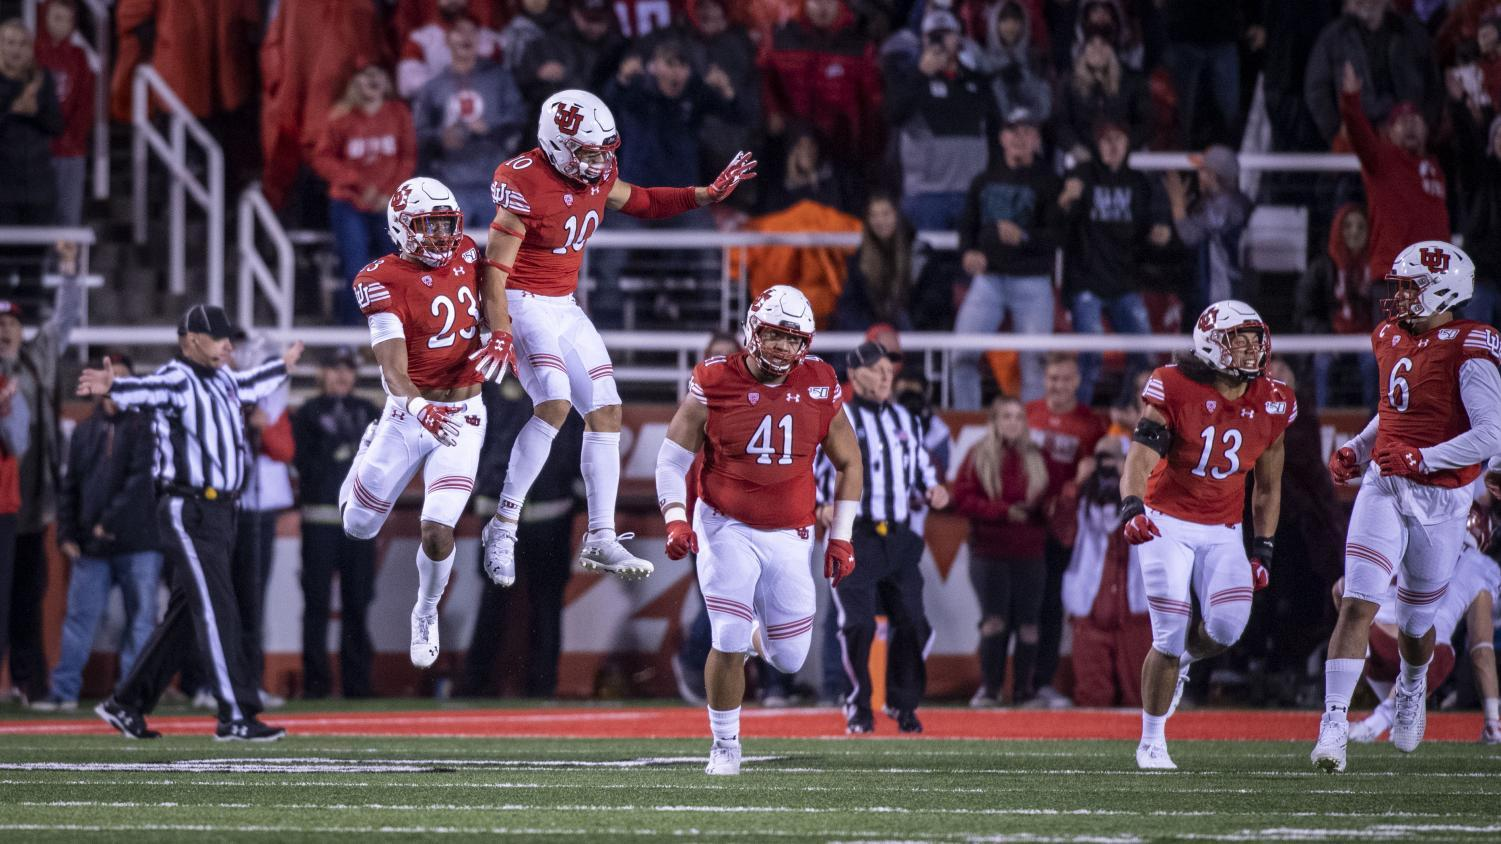 University of Utah senior defensive back Julian Blackmon (23) celebrates with R.J. Hubert (10) after stopping Washington State on their fourth down during an NCAA Football game at Rice Eccles Stadium in Salt Lake City, Utah on Saturday, Sept. 28, 2019. (Photo by Kiffer Creveling   The Daily Utah Chronicle)